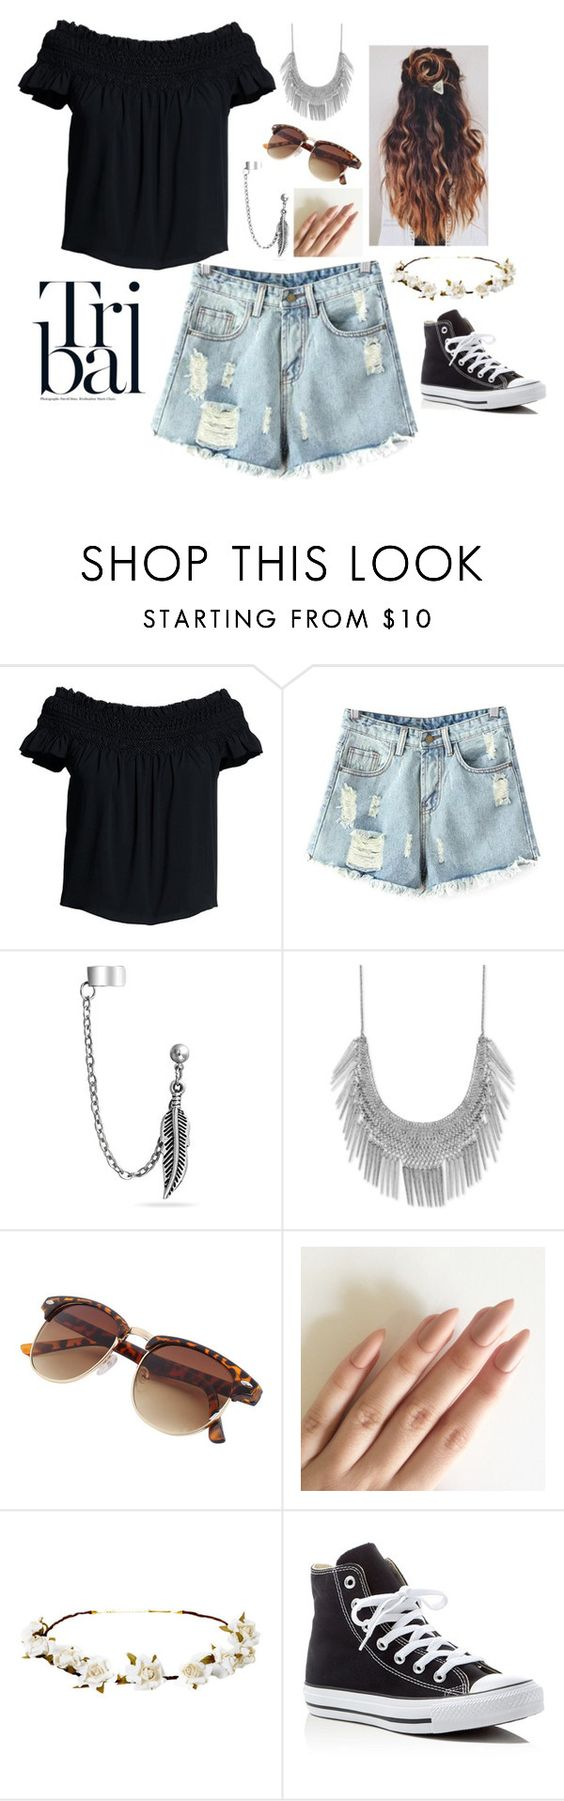 """""""Untitled #199"""" by jojasa ❤ liked on Polyvore featuring Canvas by Lands' End, Chicnova Fashion, Bling Jewelry, Lucky Brand, Cult Gaia and Converse"""